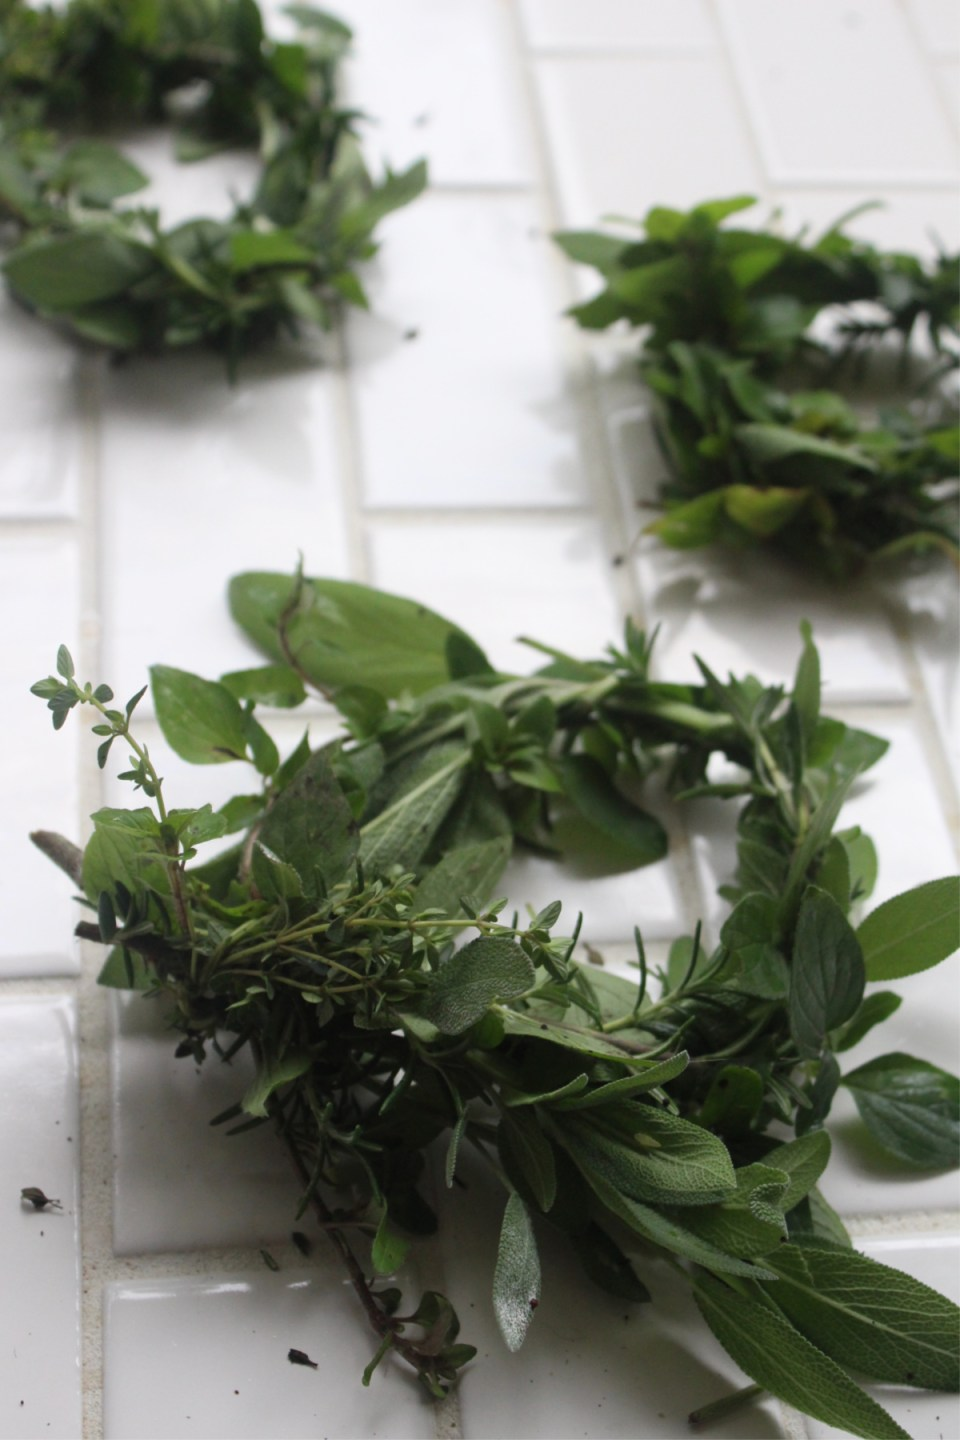 How To Make DIY Herbal Soup Rings | Herbal Academy | Take your water-based foods to the next level by using these herbal soup rings to amp up the flavor and nutritional benefits! Learn to make them in this post.